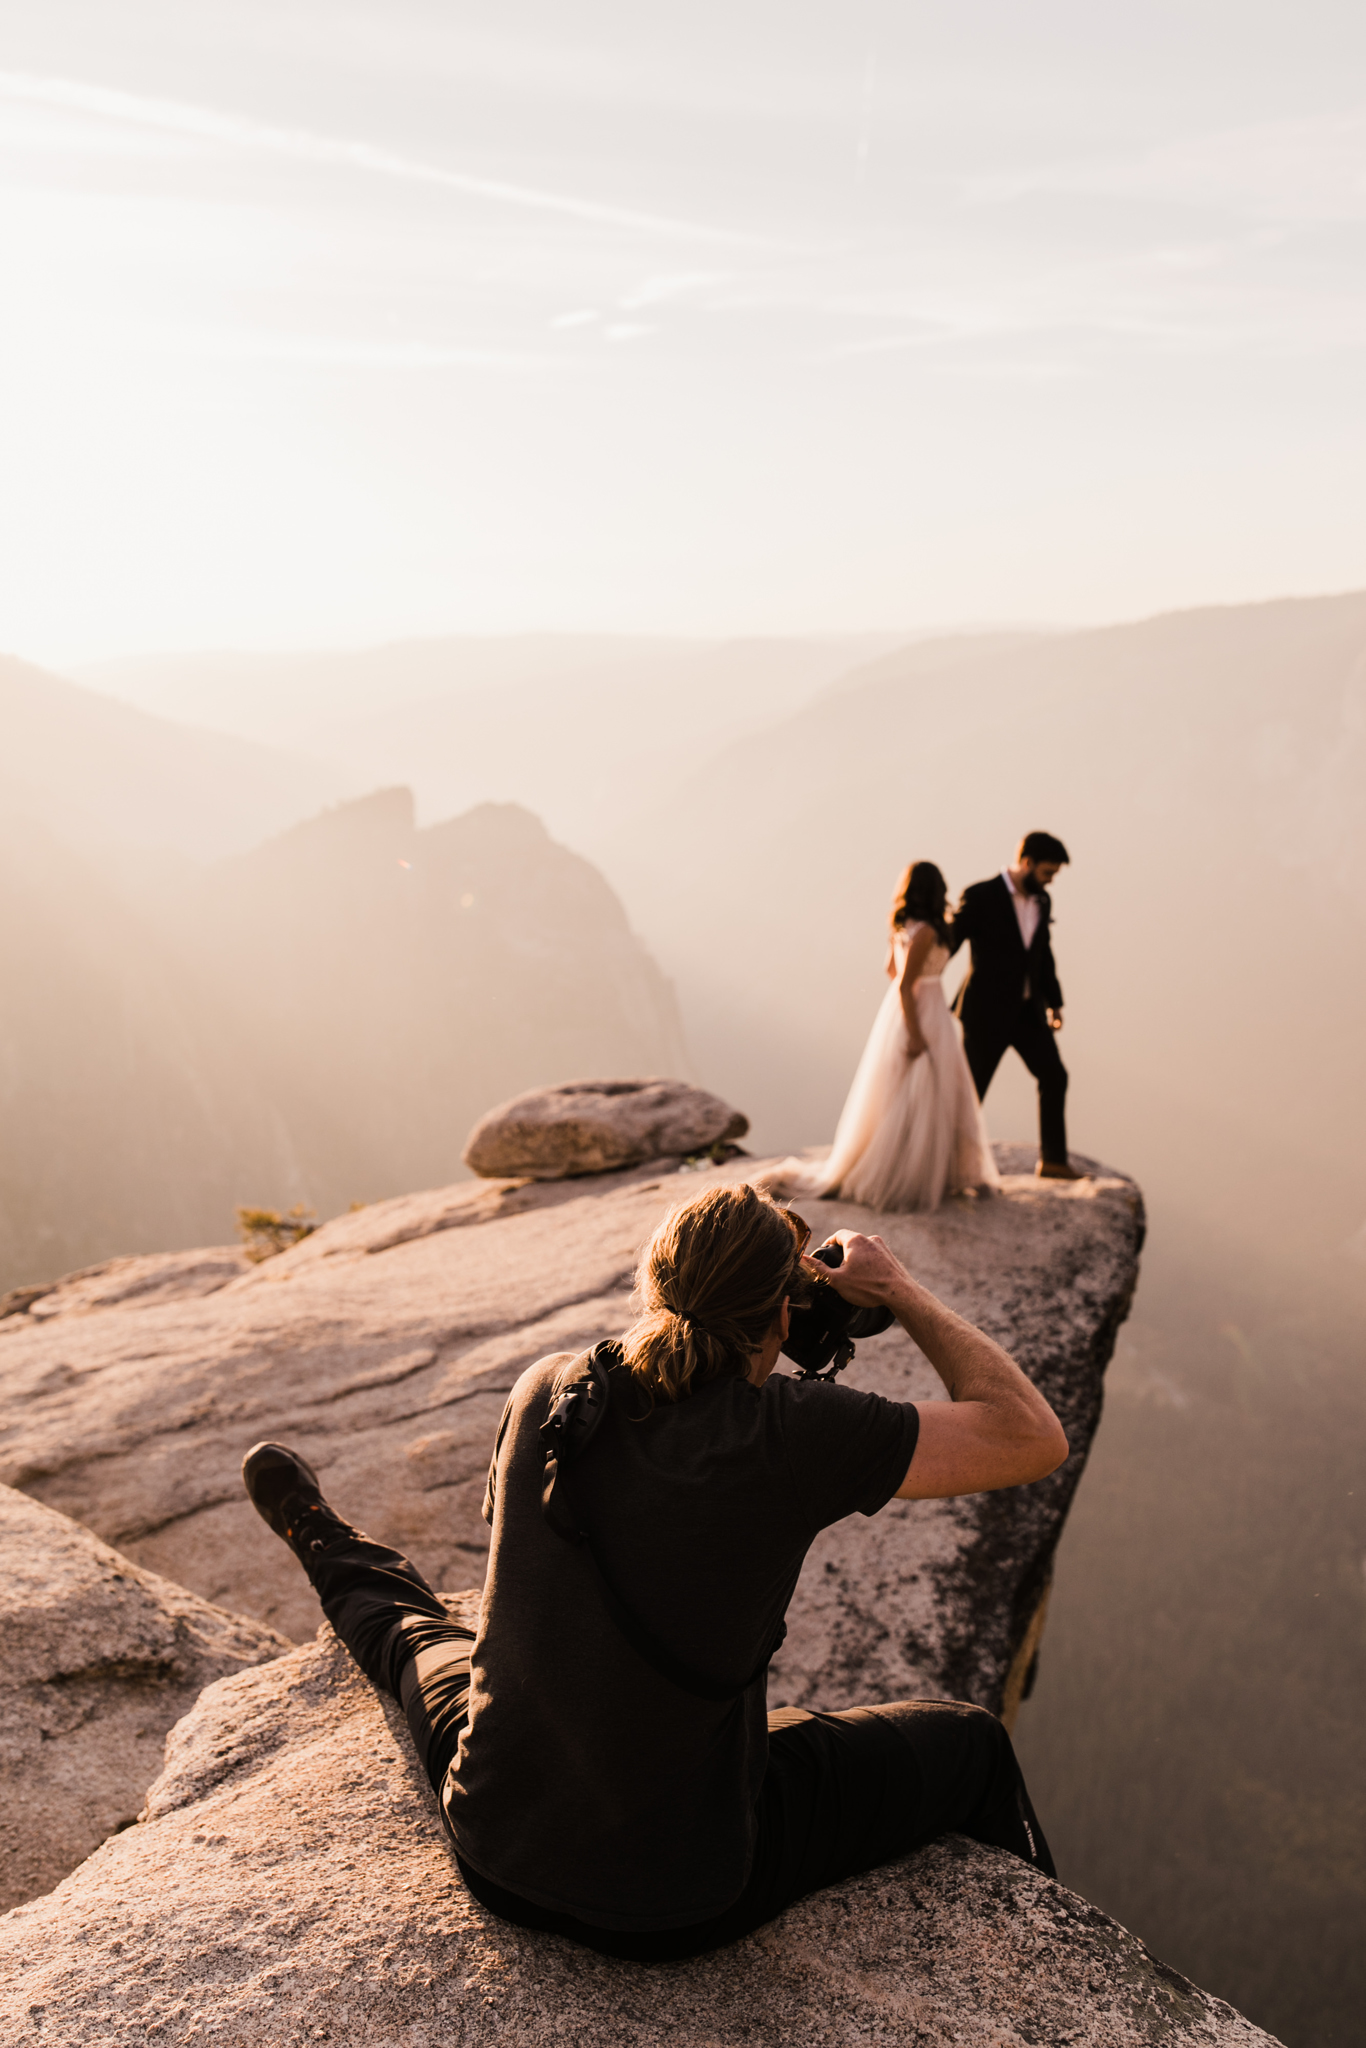 photographing an elopement in yosemite national park | utah and california adventure elopement photographers | the hearnes adventure photography | www.thehearnes.com